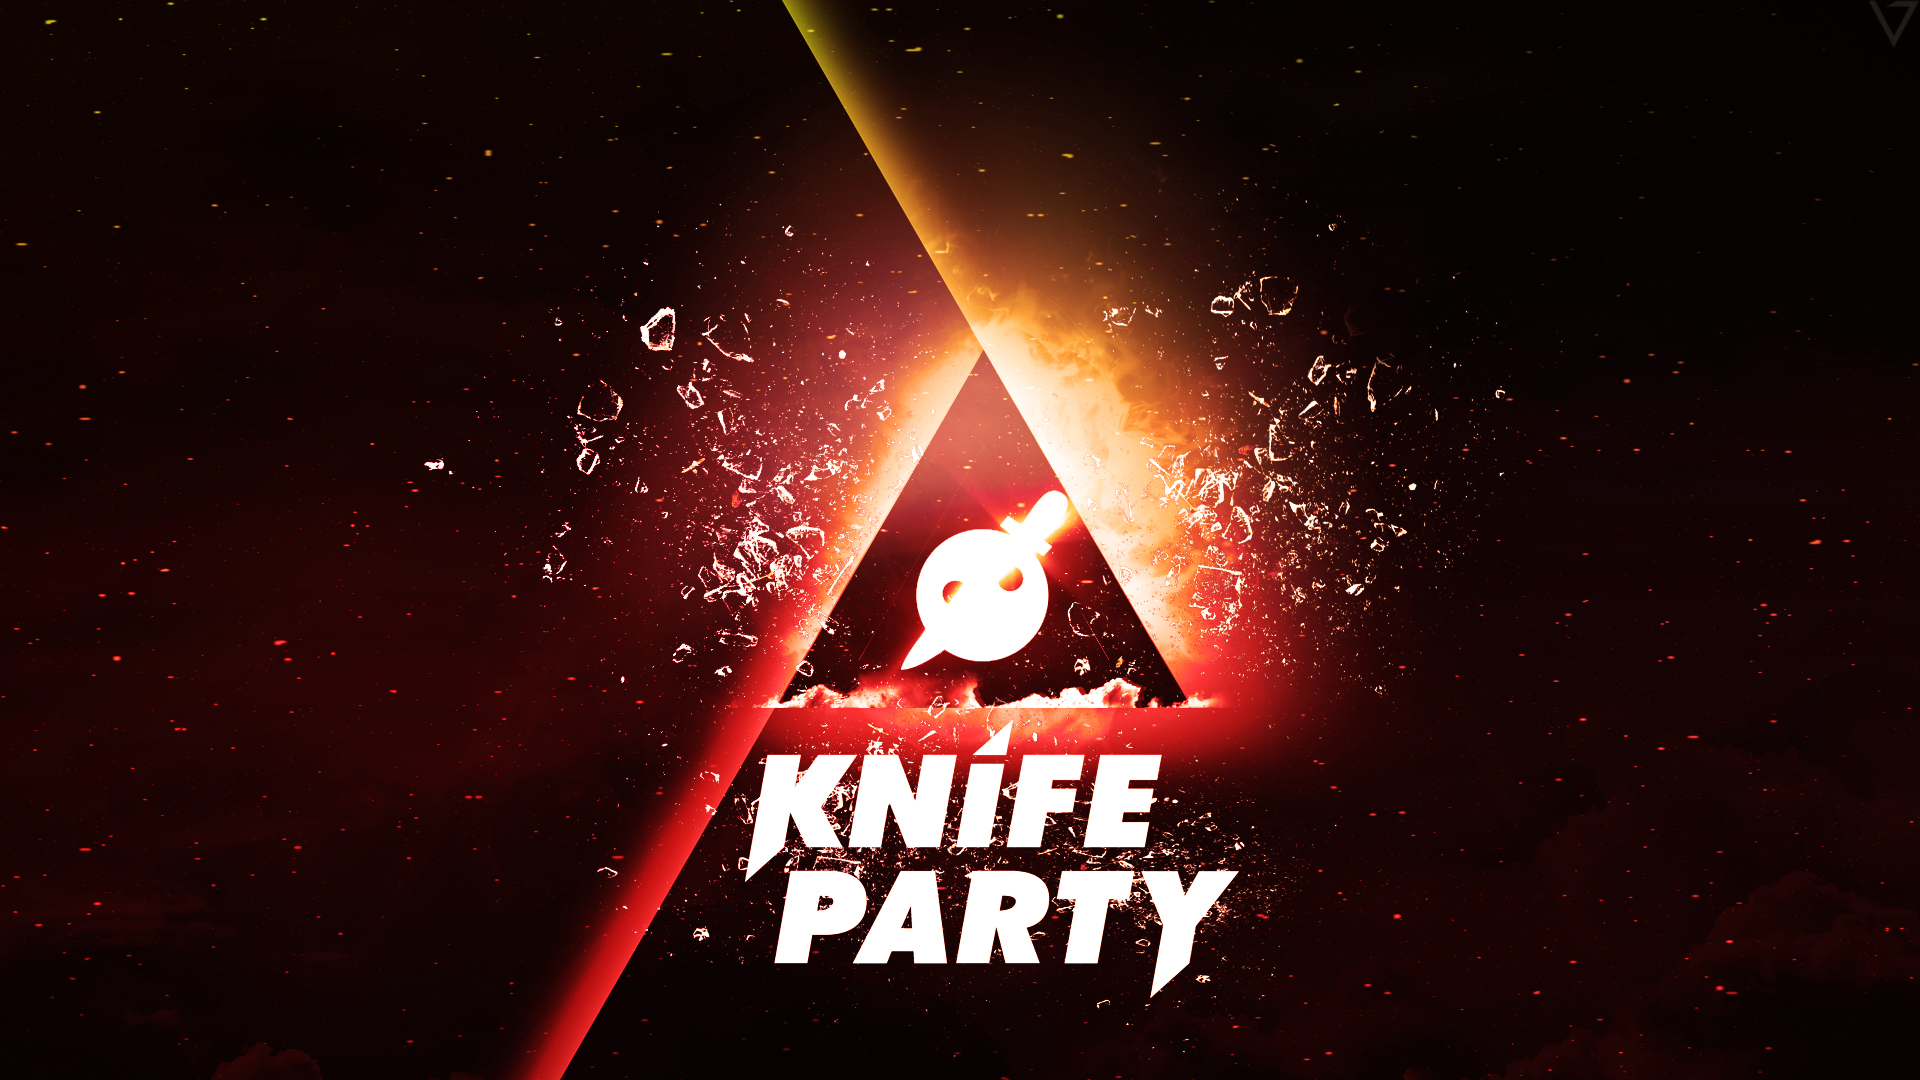 Knife Party Wallpaper Iphone Knife Party Wallpaper ...